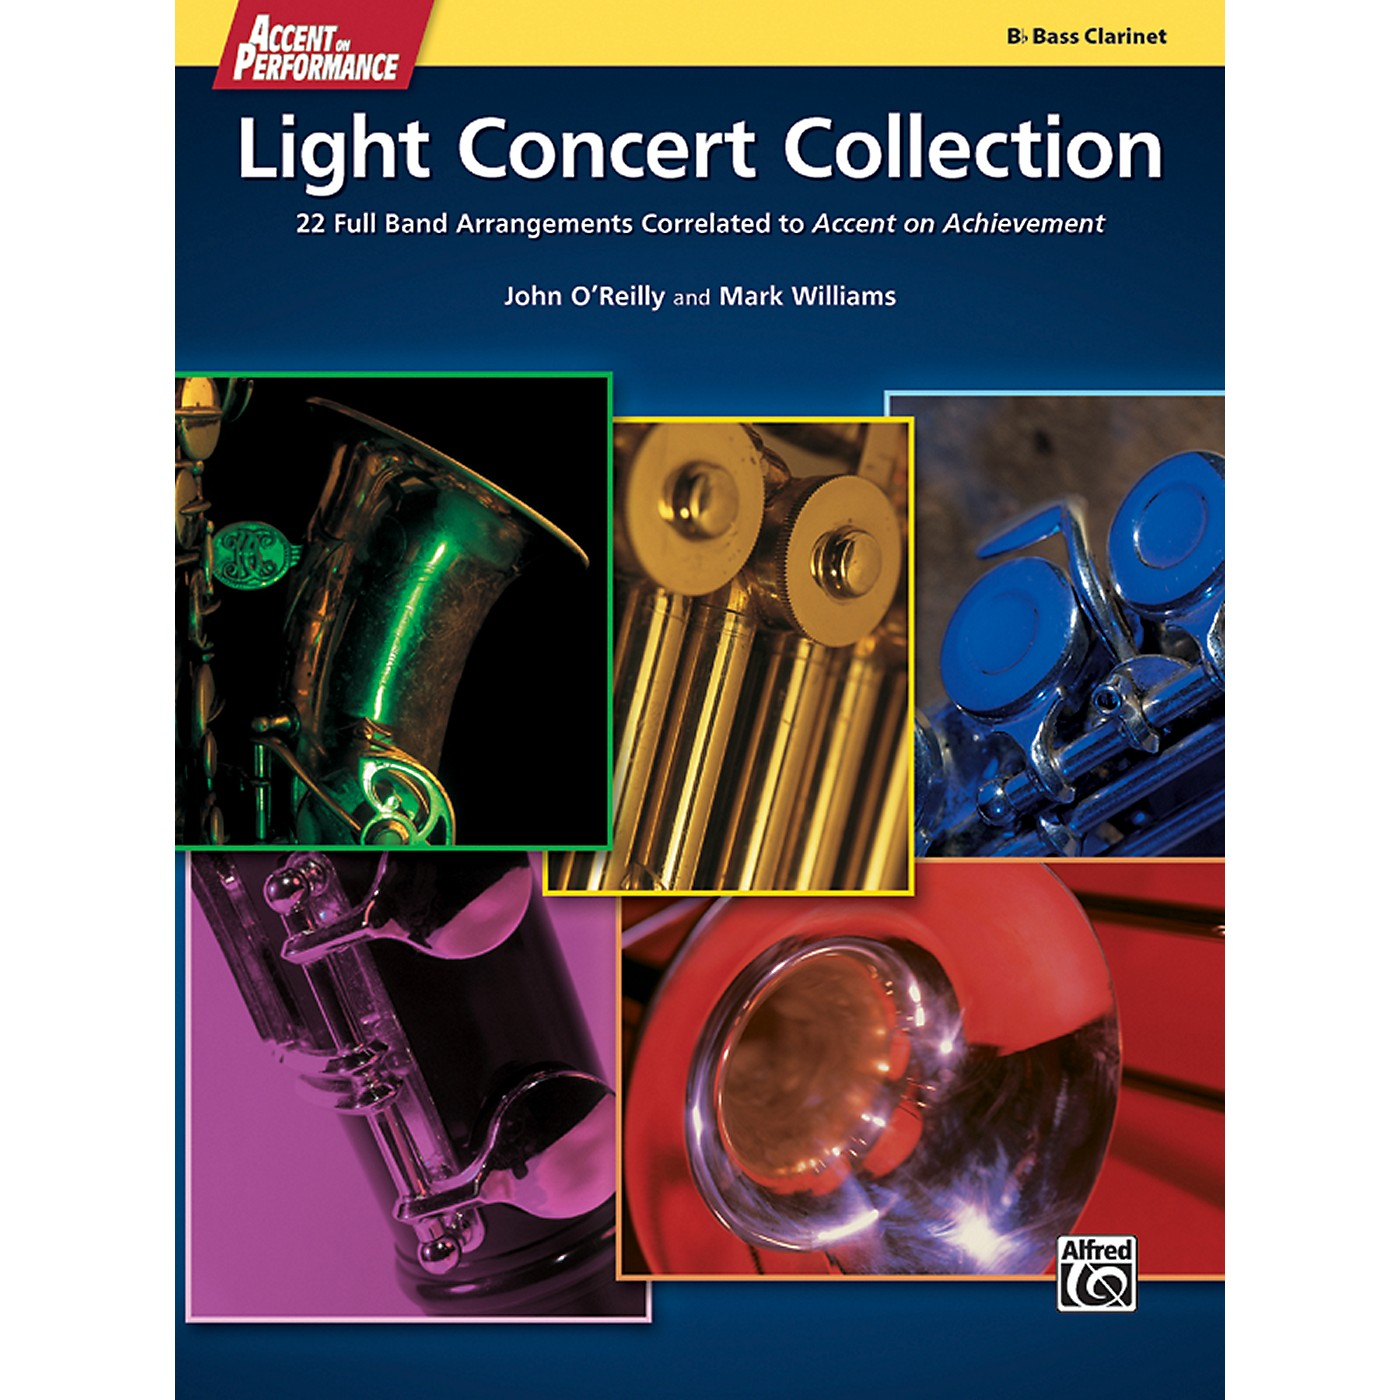 Alfred Accent on Performance Light Concert Collection Bass Clarinet Book thumbnail